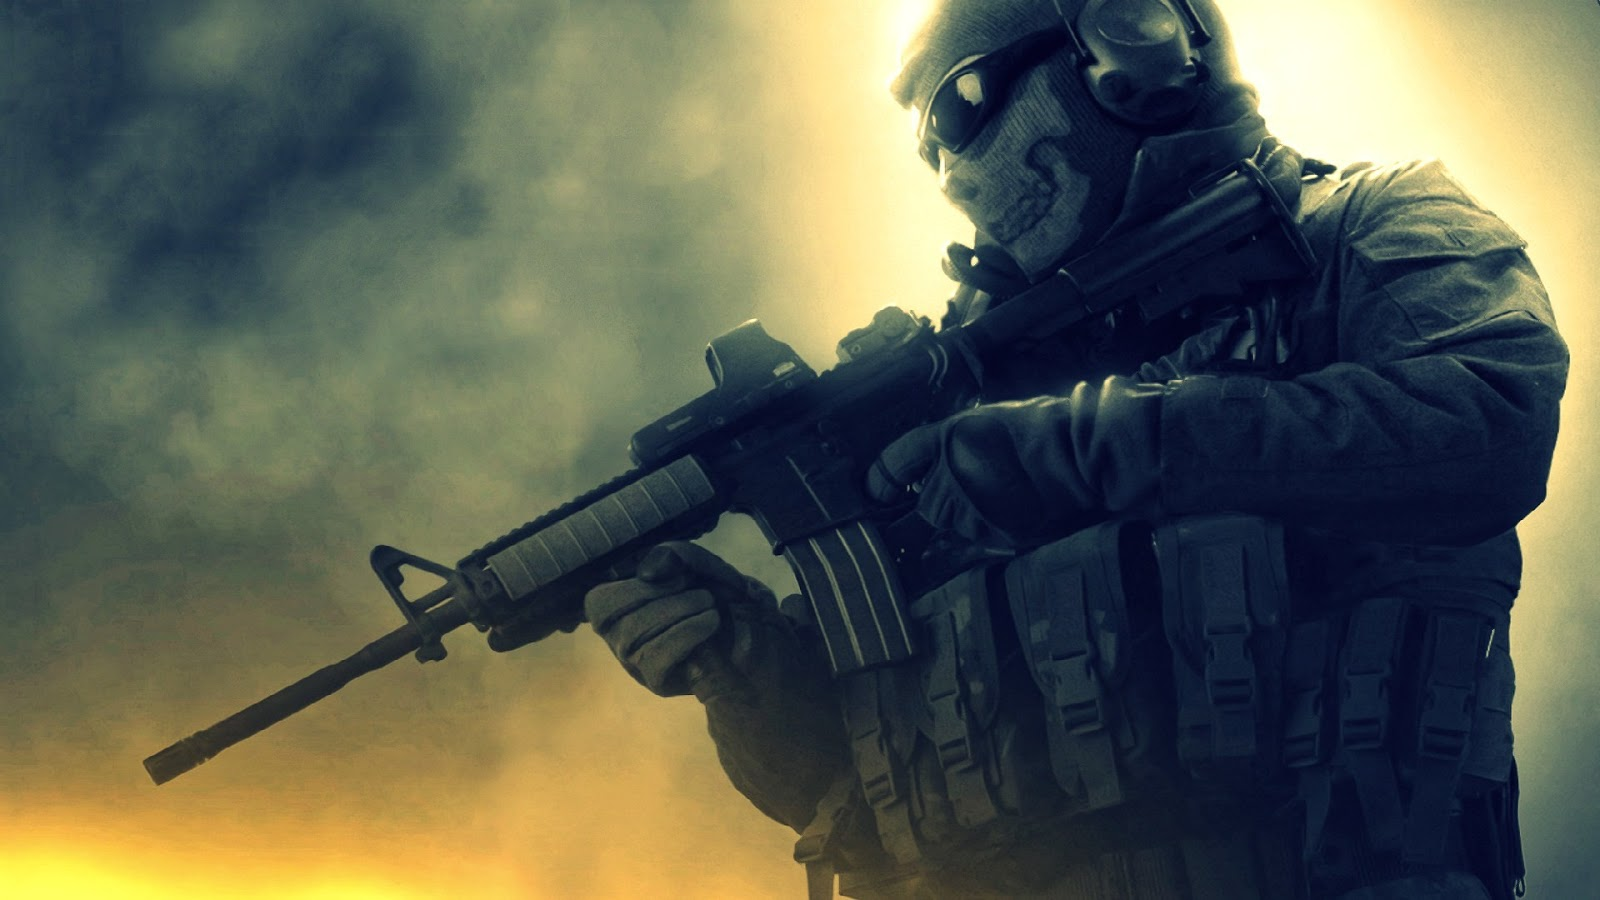 Soldier HD Wallpapers 1600x900